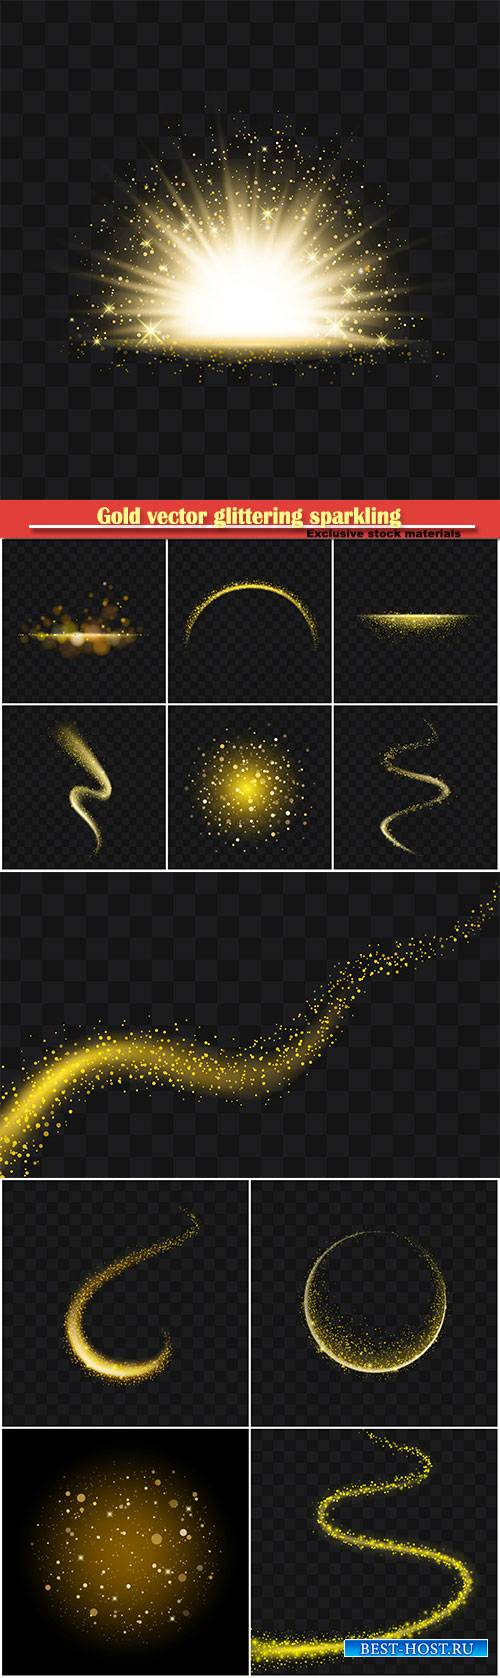 Gold vector glittering sparkling abstract particles on background